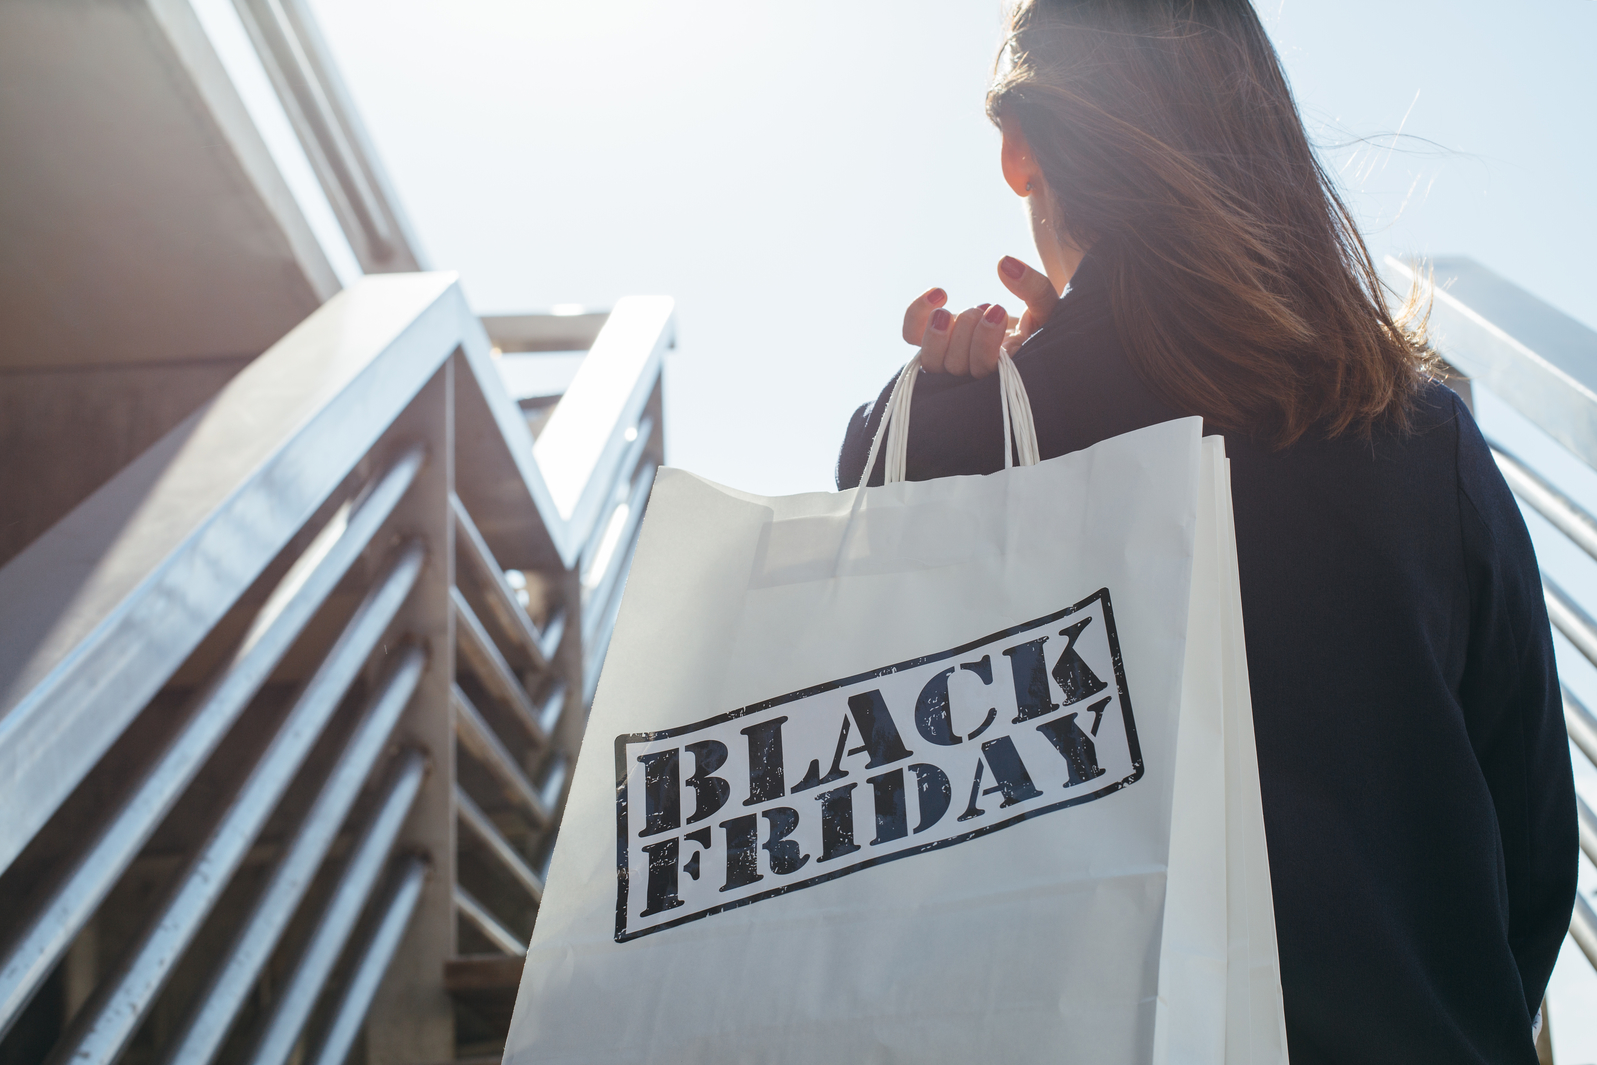 Rear view of incognito brunette holding Black Friday shopping bag while standing outdoors. Copyspace